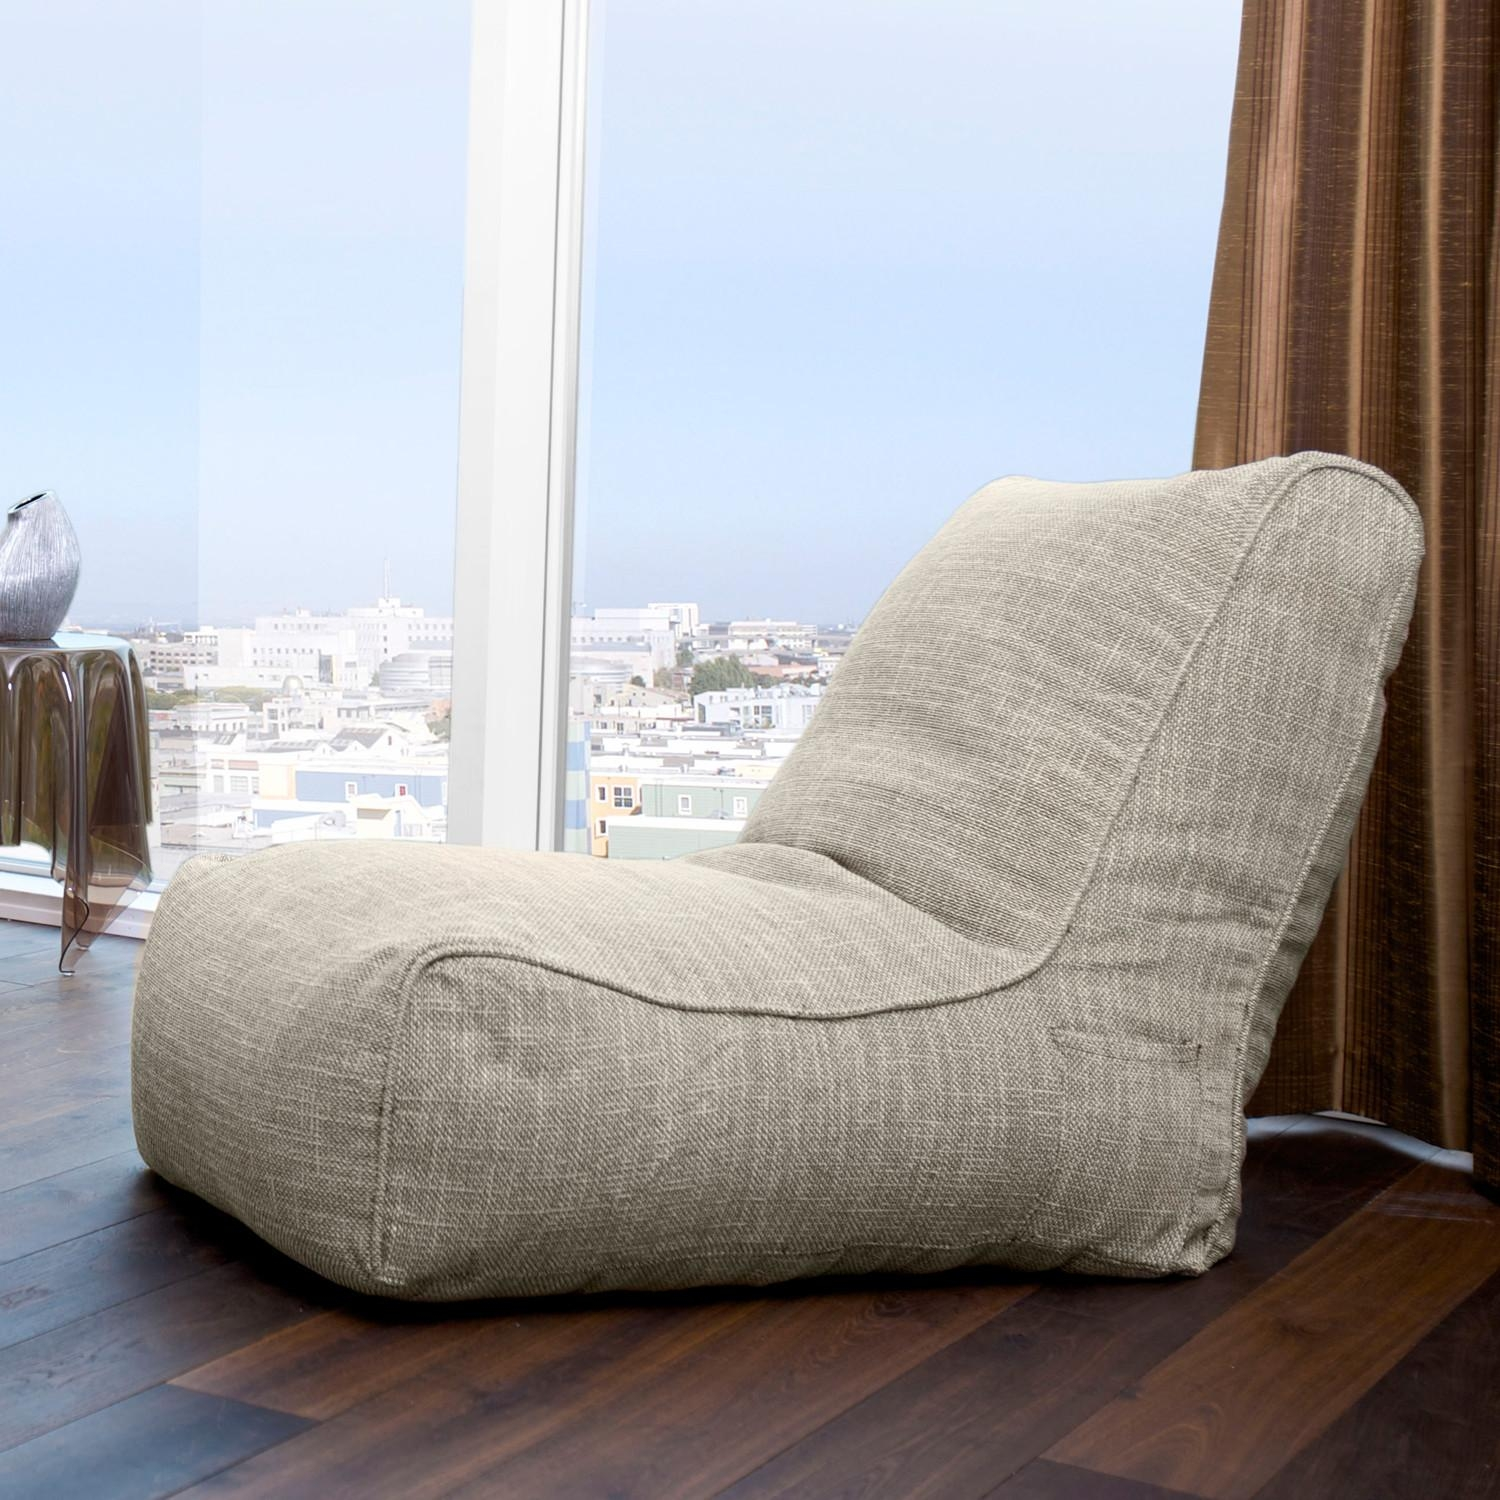 Diy: Cool Bean Bag Chair Ikea For Home Furniture Ideas — Mabas4 Pertaining To Bean Bag Sofas And Chairs (Image 8 of 20)